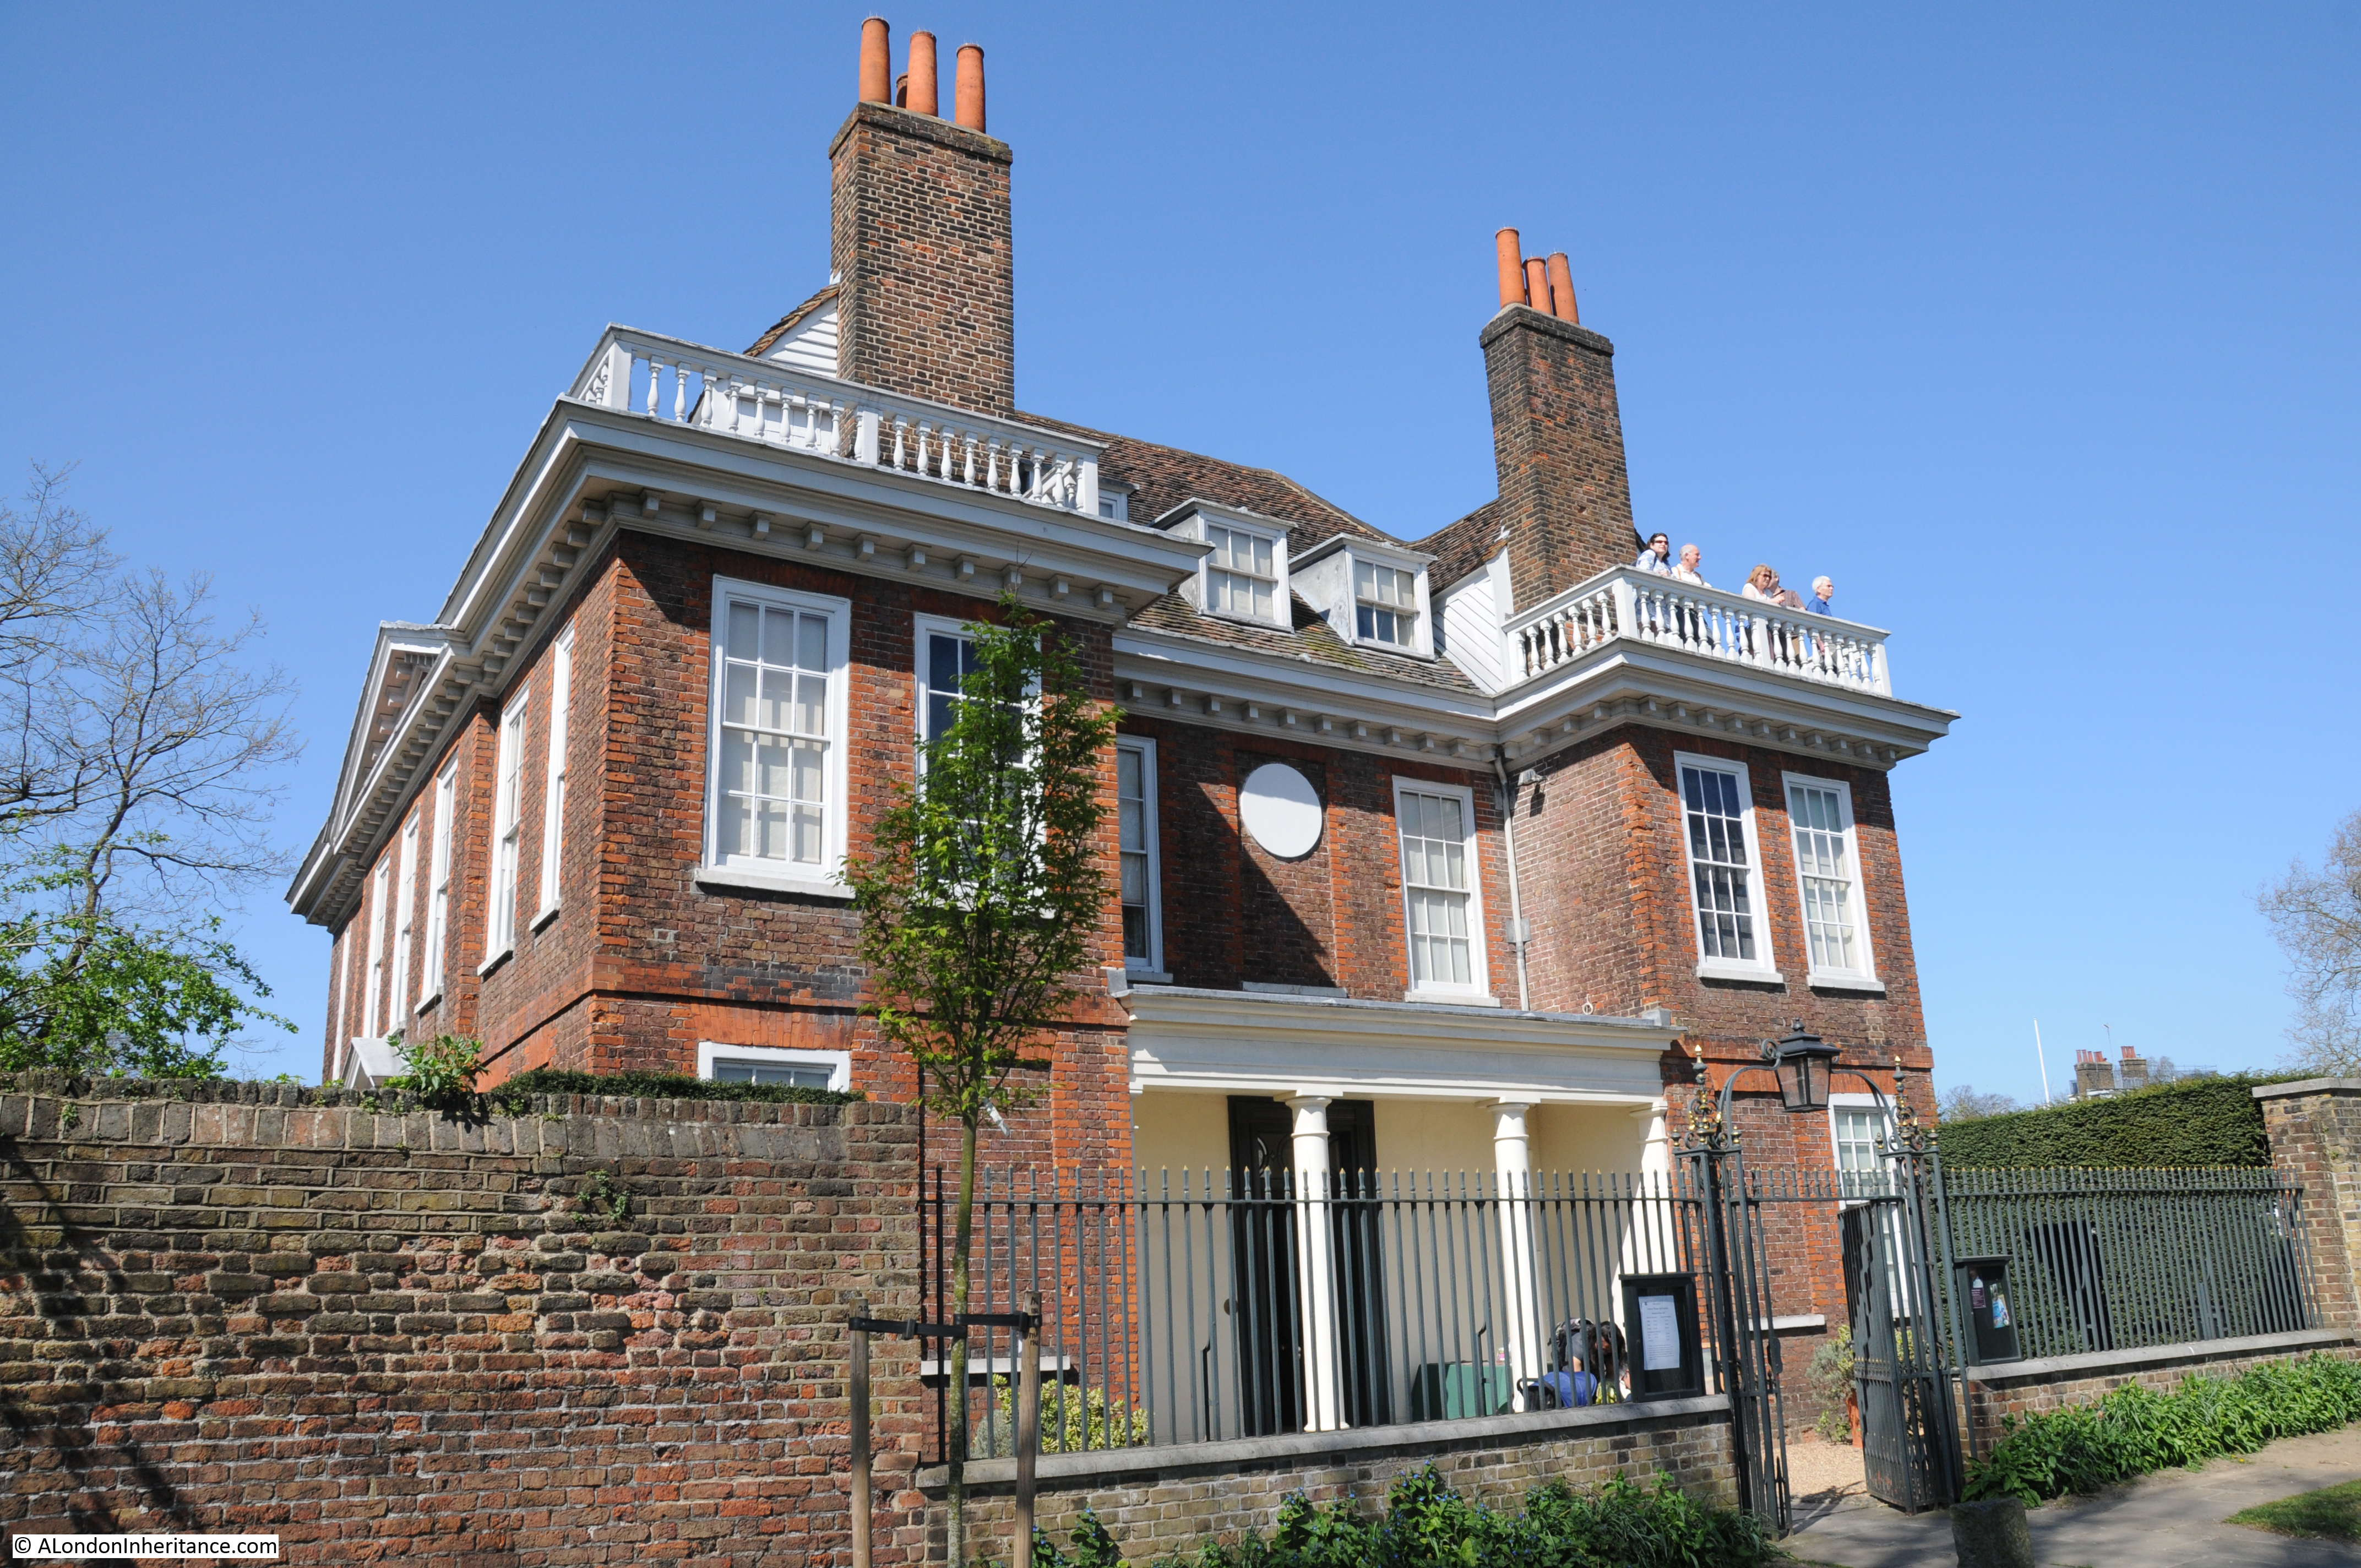 Fenton house hampstead a london inheritance for Www house